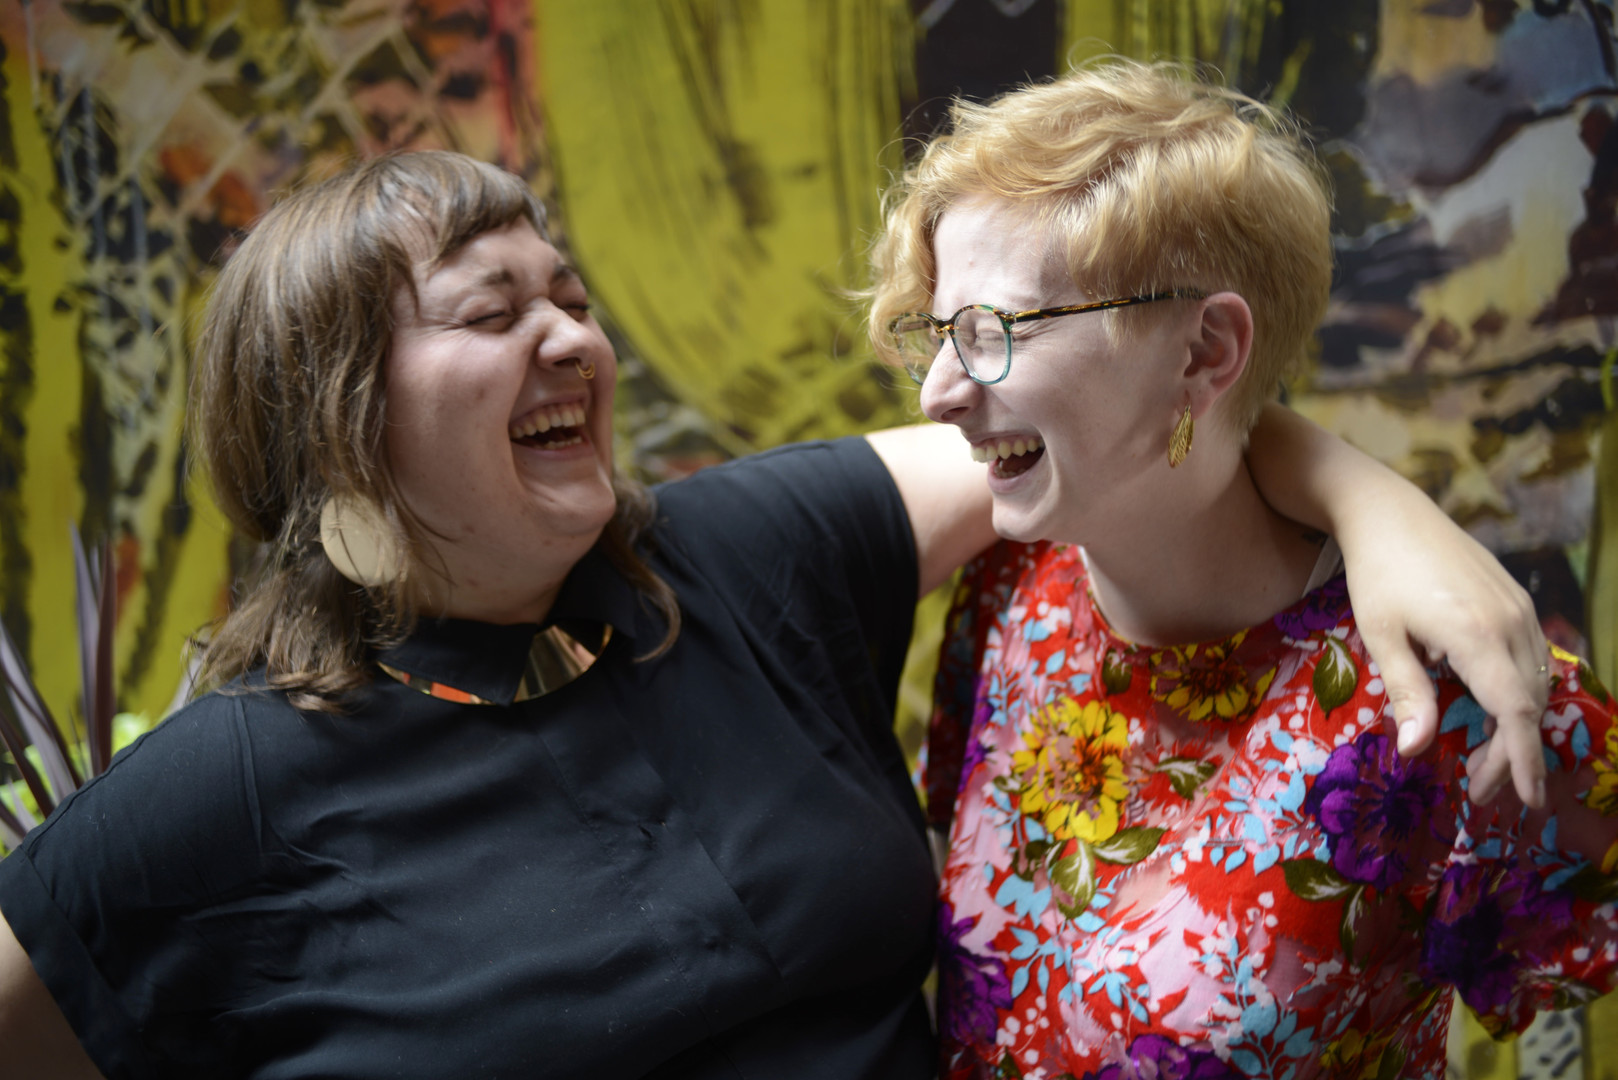 DAM dame sharing a funny with her friend